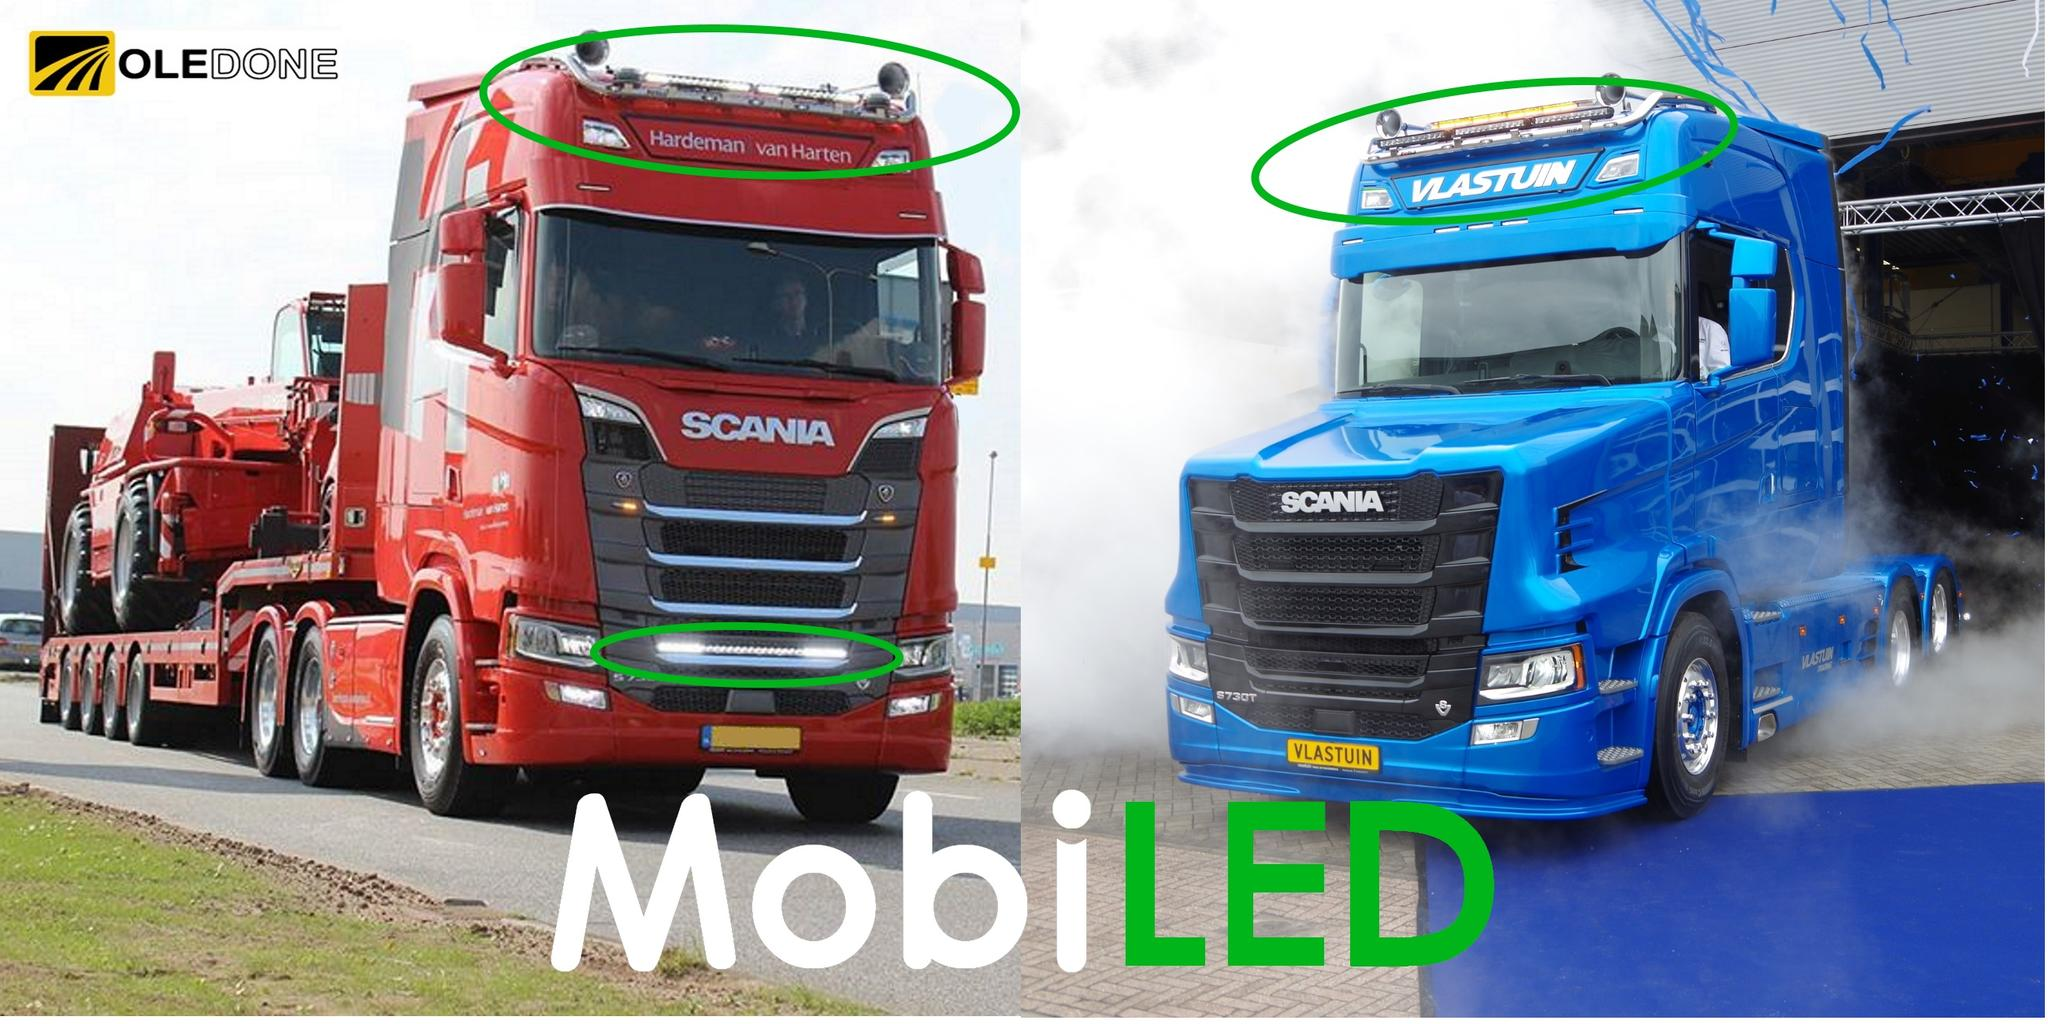 Scania torpedo led bar verstralers MobiLED oledone nighthawk styling tuning